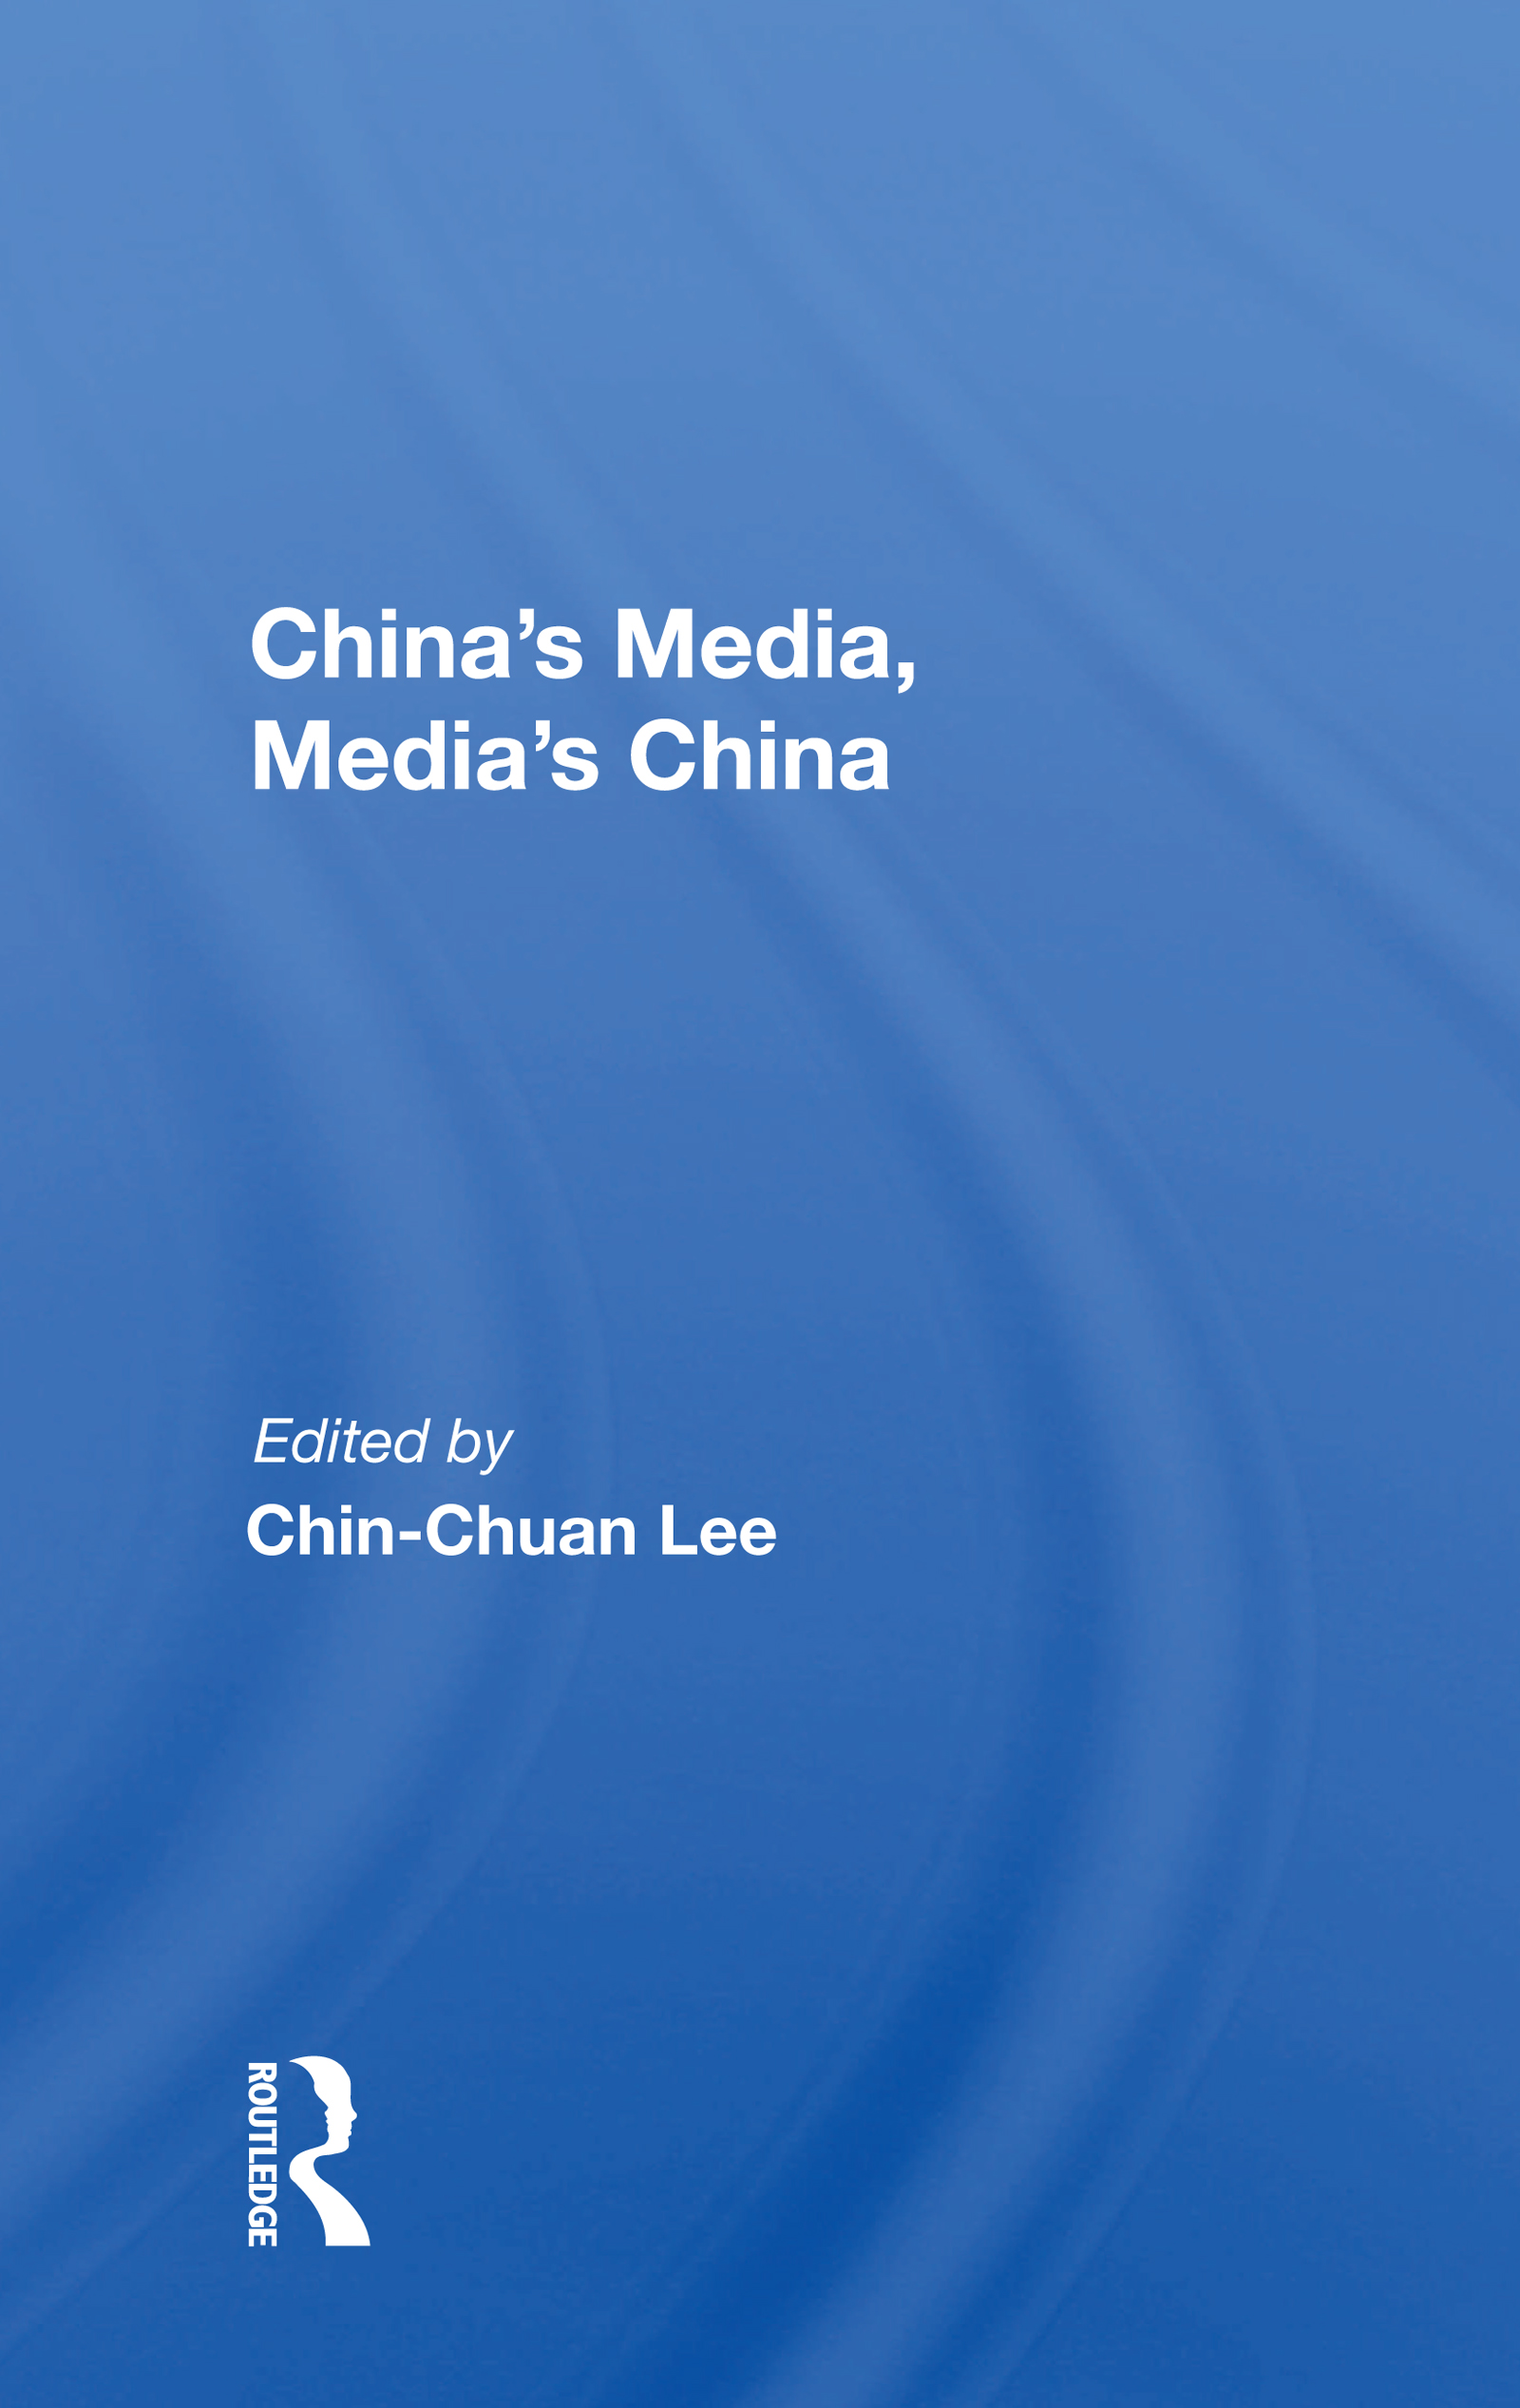 """The Historical Fate of """"Objective Reporting"""" in China"""